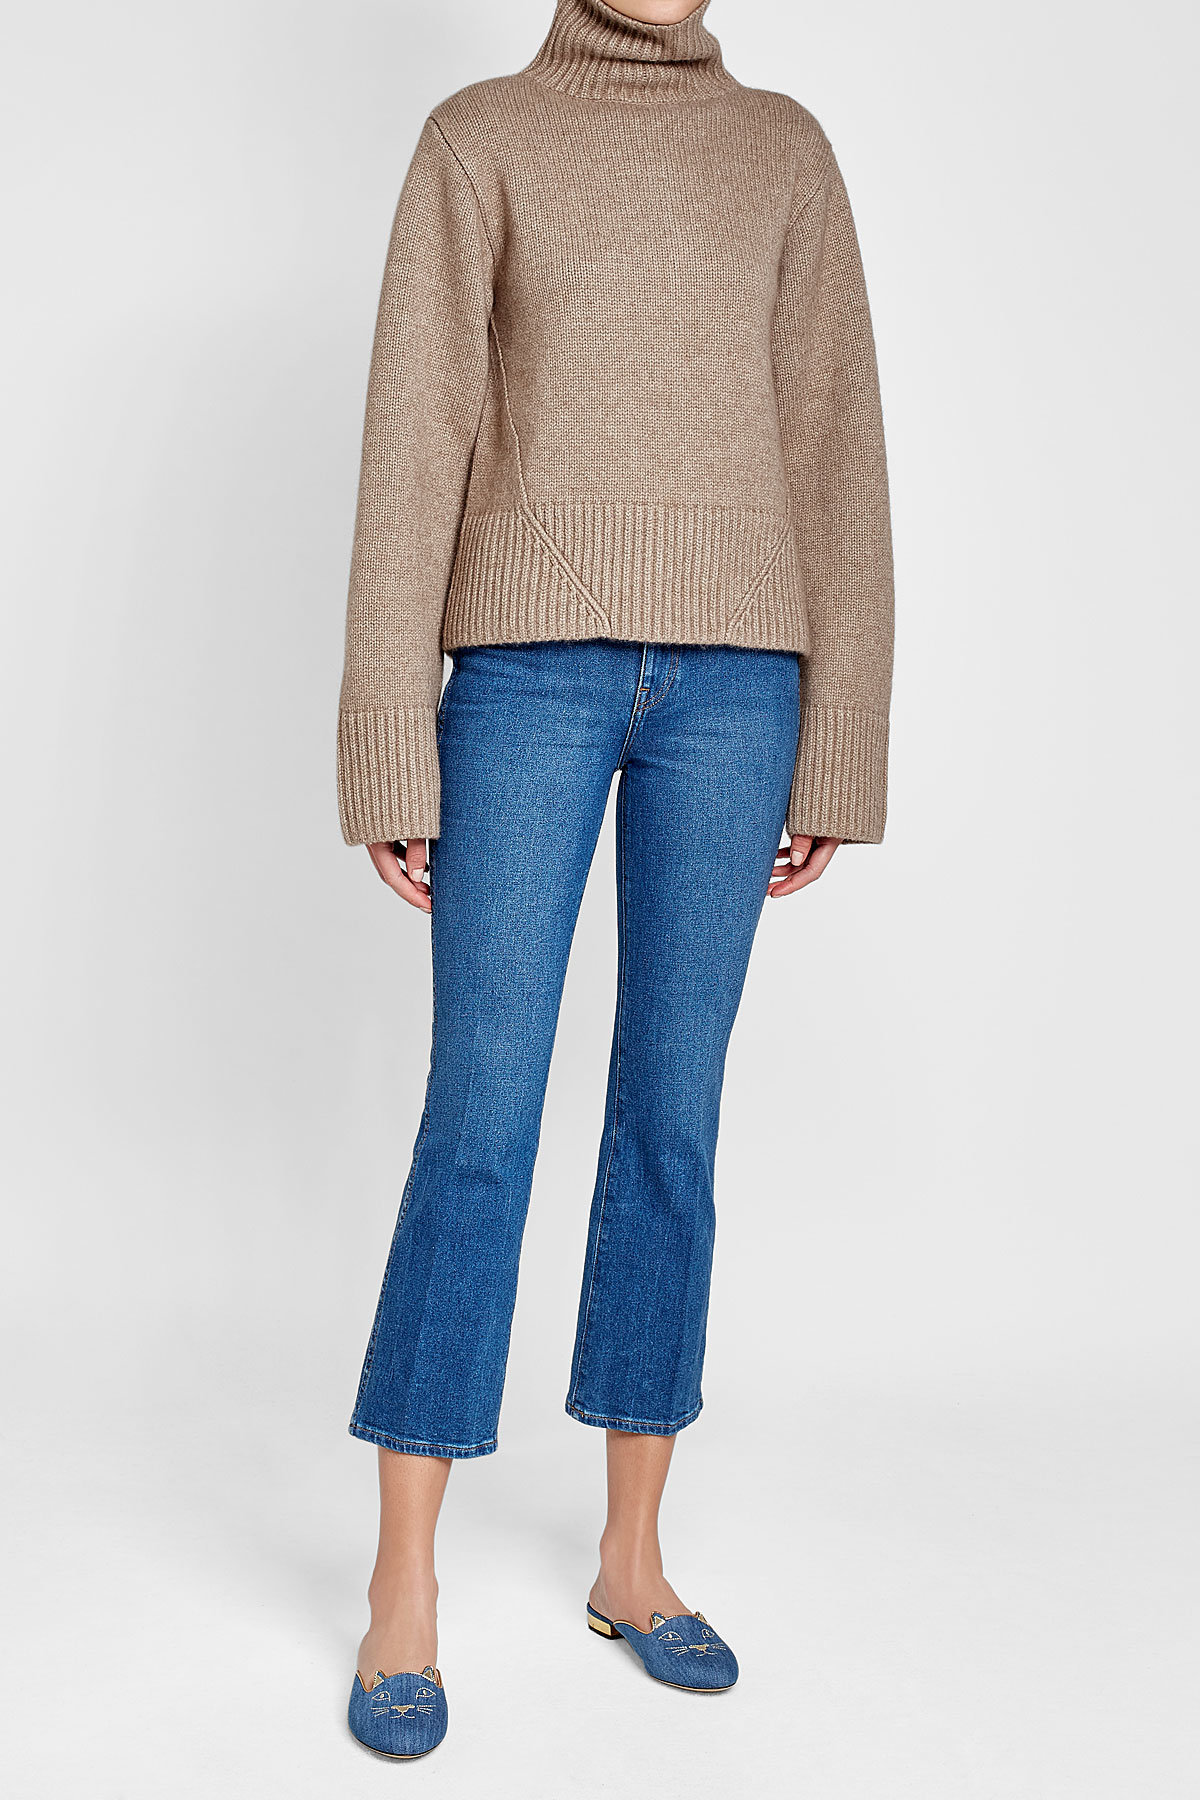 khaite wallis cashmere turtleneck with Khaite benny cropped flared jeans spring 2018 outfit ideas